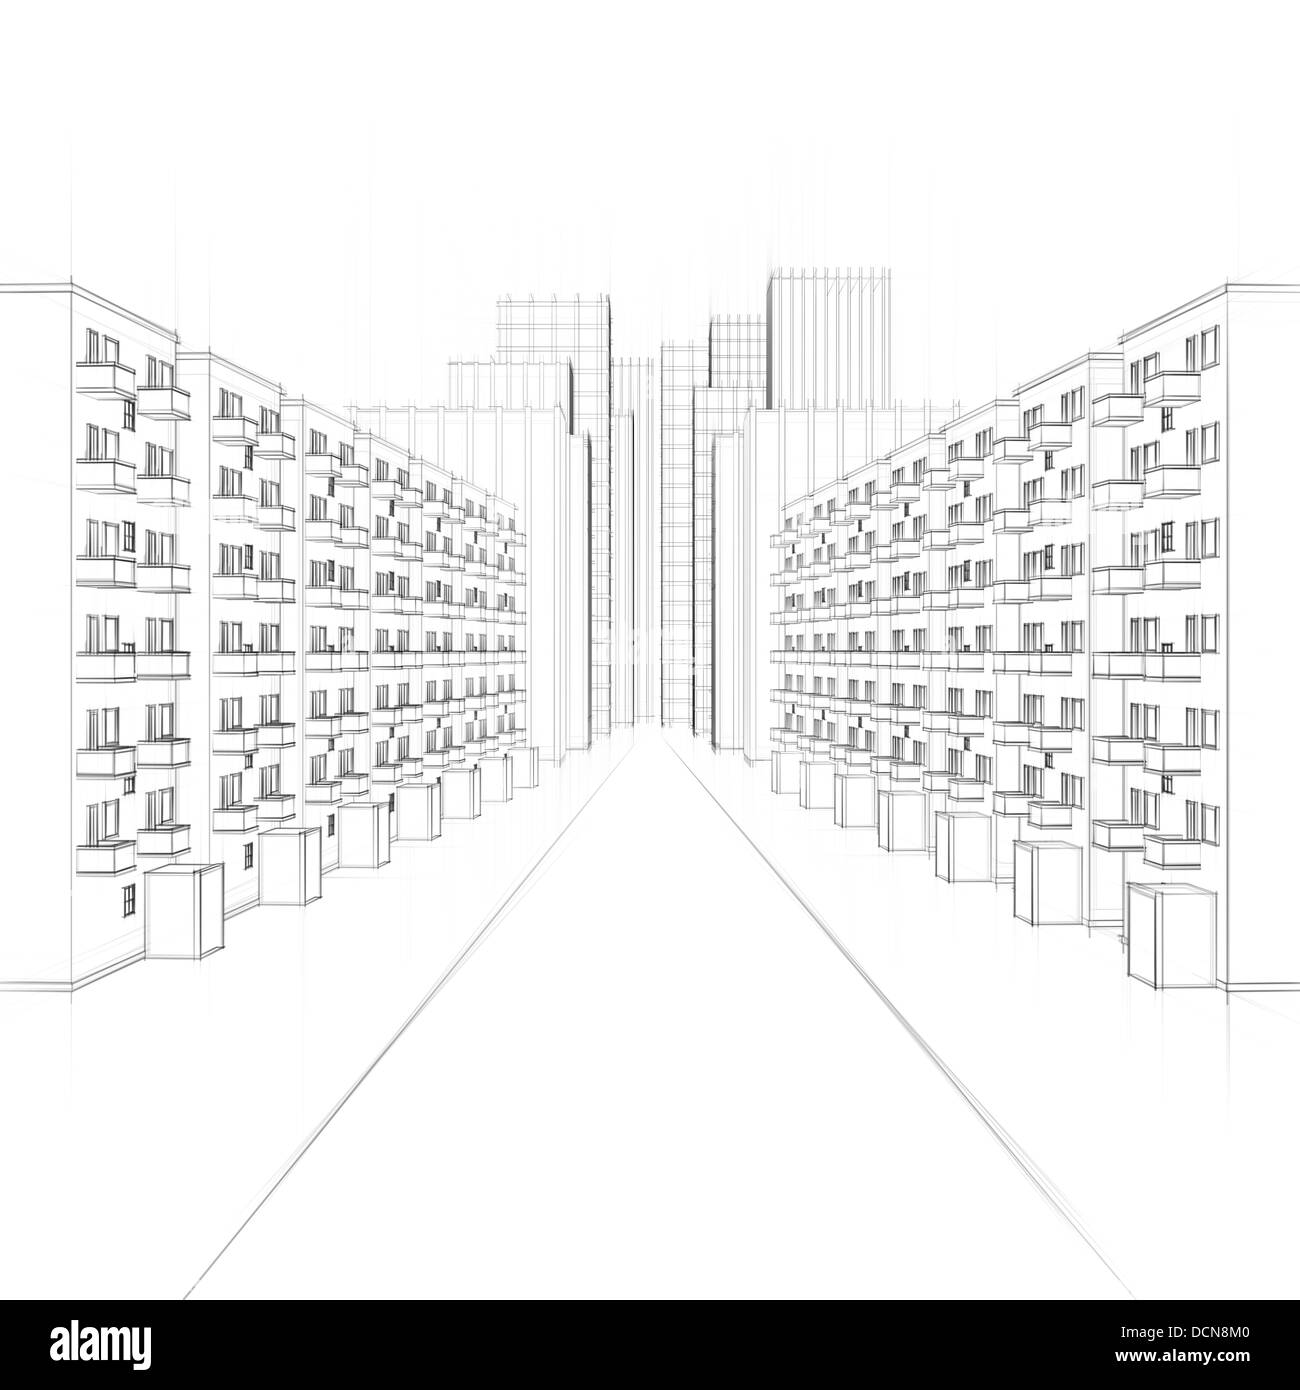 line drawing of an urban street with apartment houses stock photo